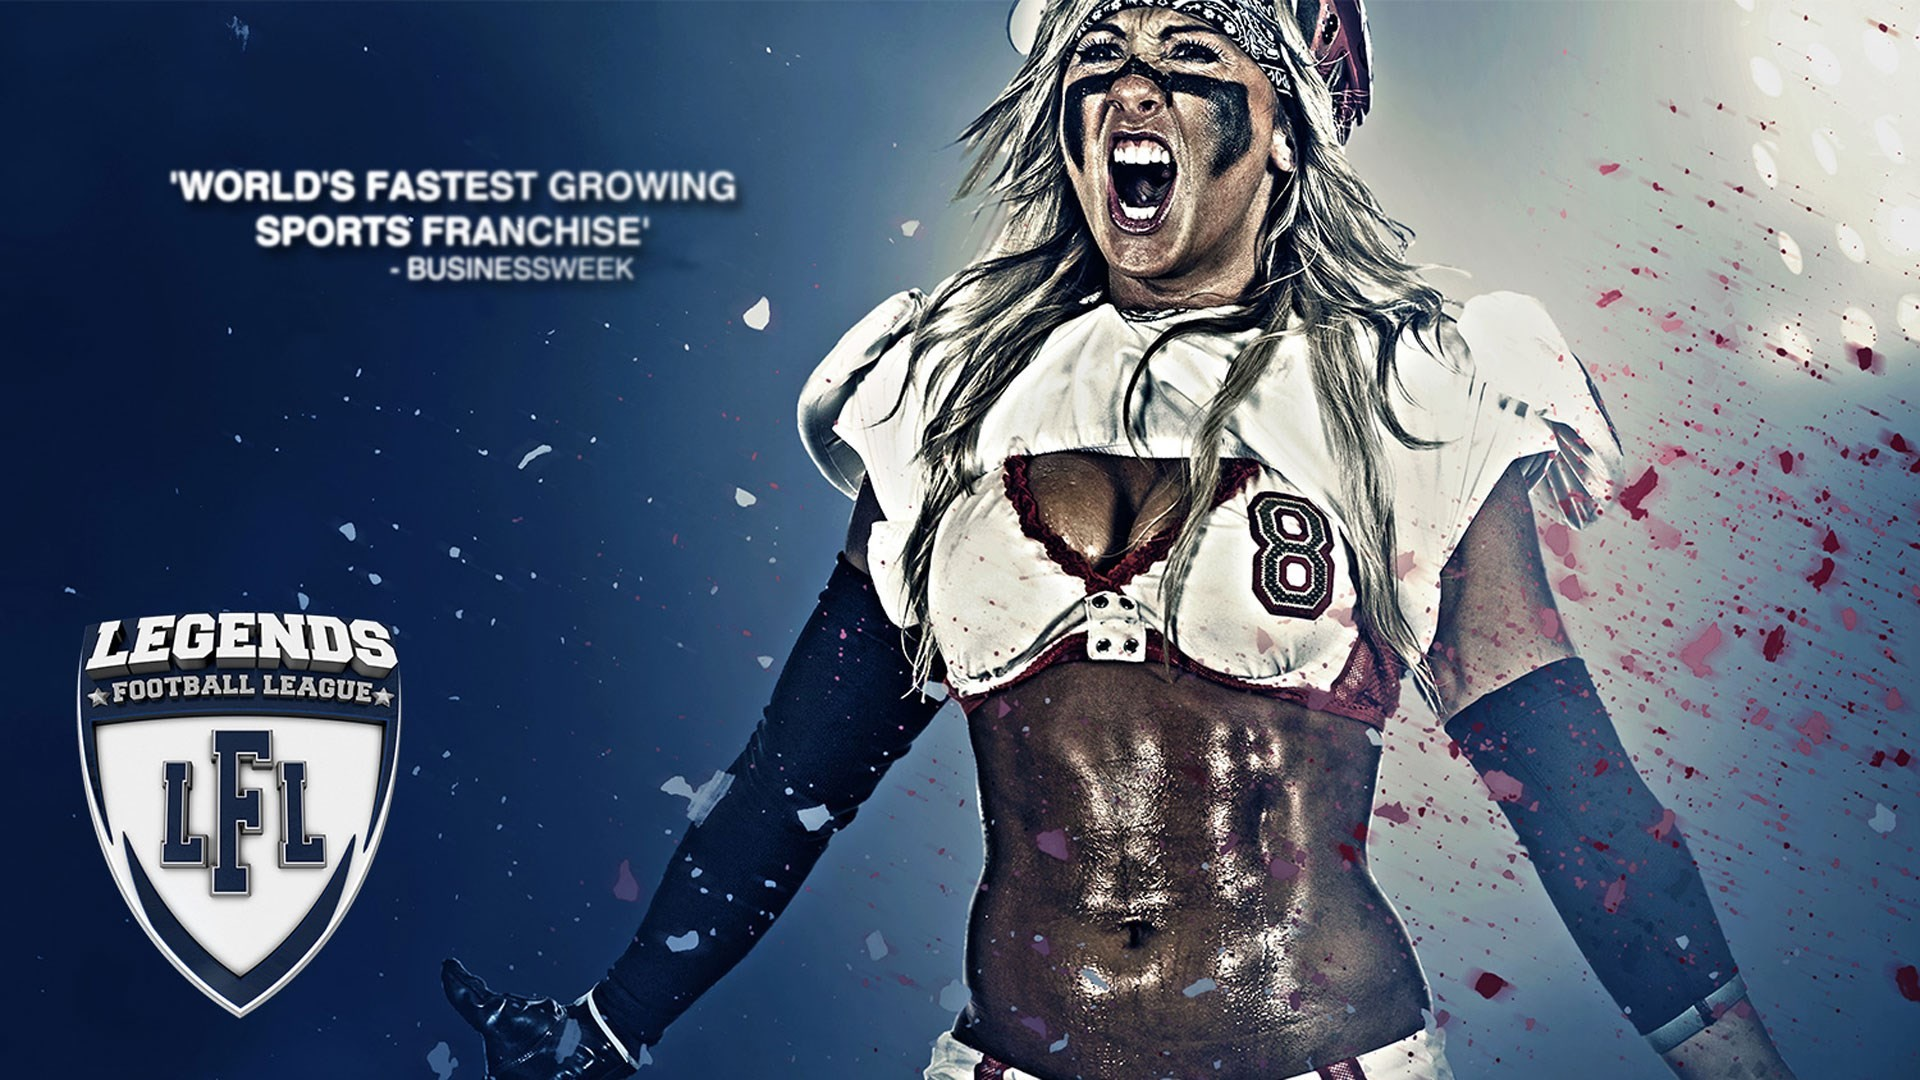 lfl players wallpapers